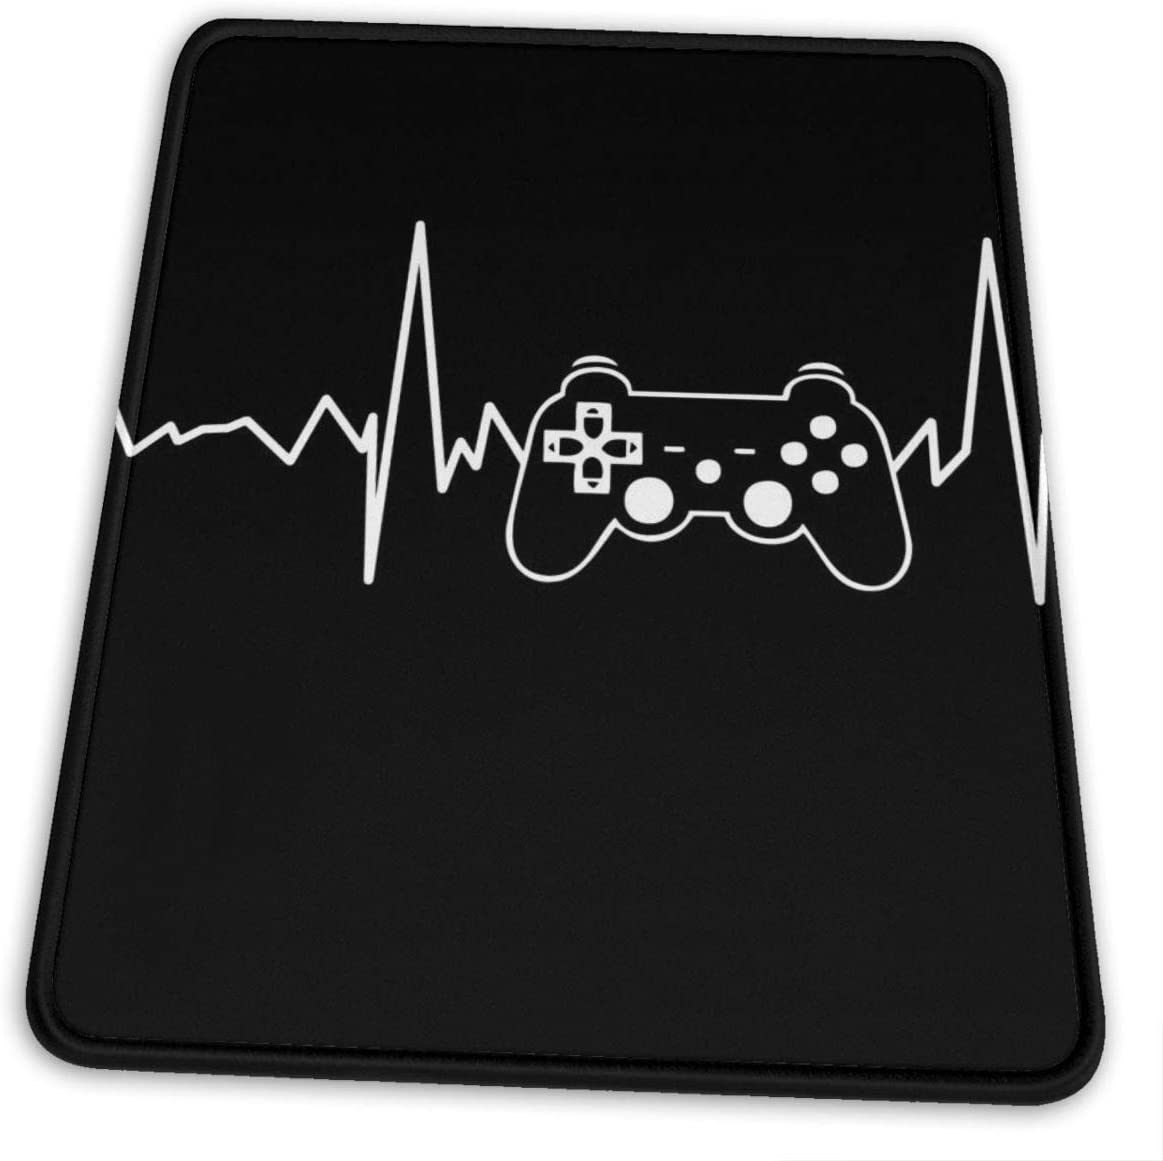 Gamer Head Hemming The Mouse Pad 10 X 12 Inch Esports Office Study Computer